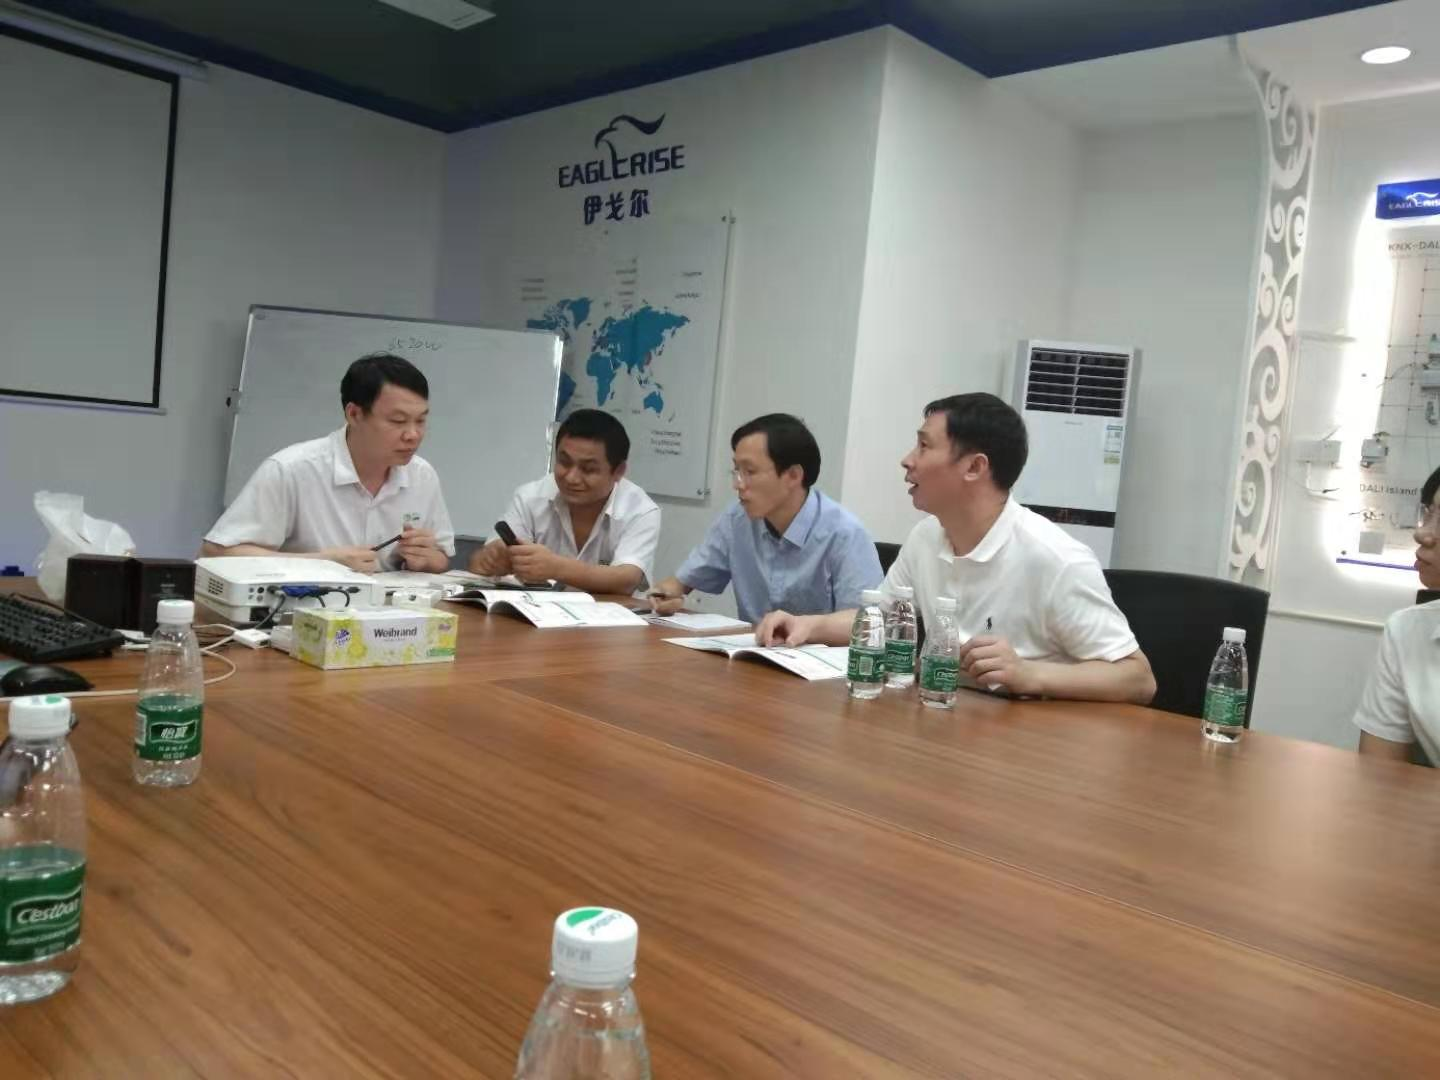 PNY-Tour And Visit To Foshan Eaglerise Electric Electronic Co, Ltd-4